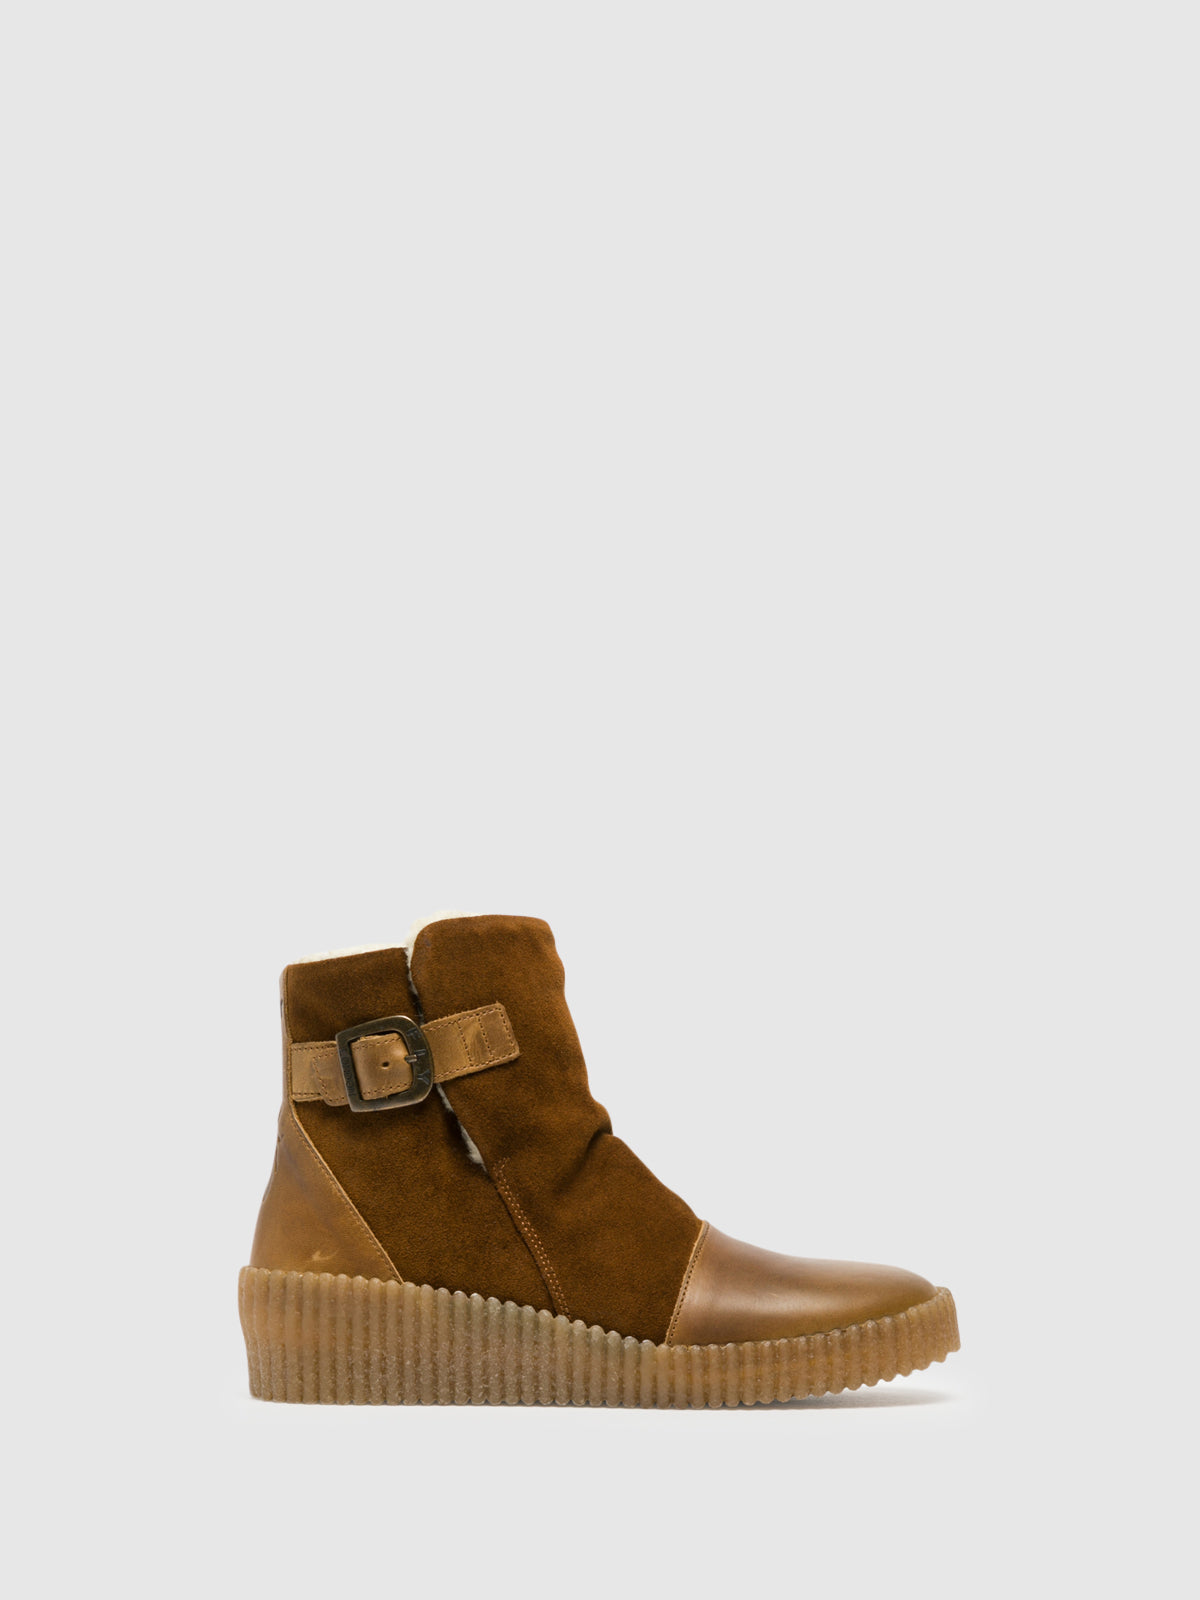 Fly London Botas estilo Eskimo en color Camel